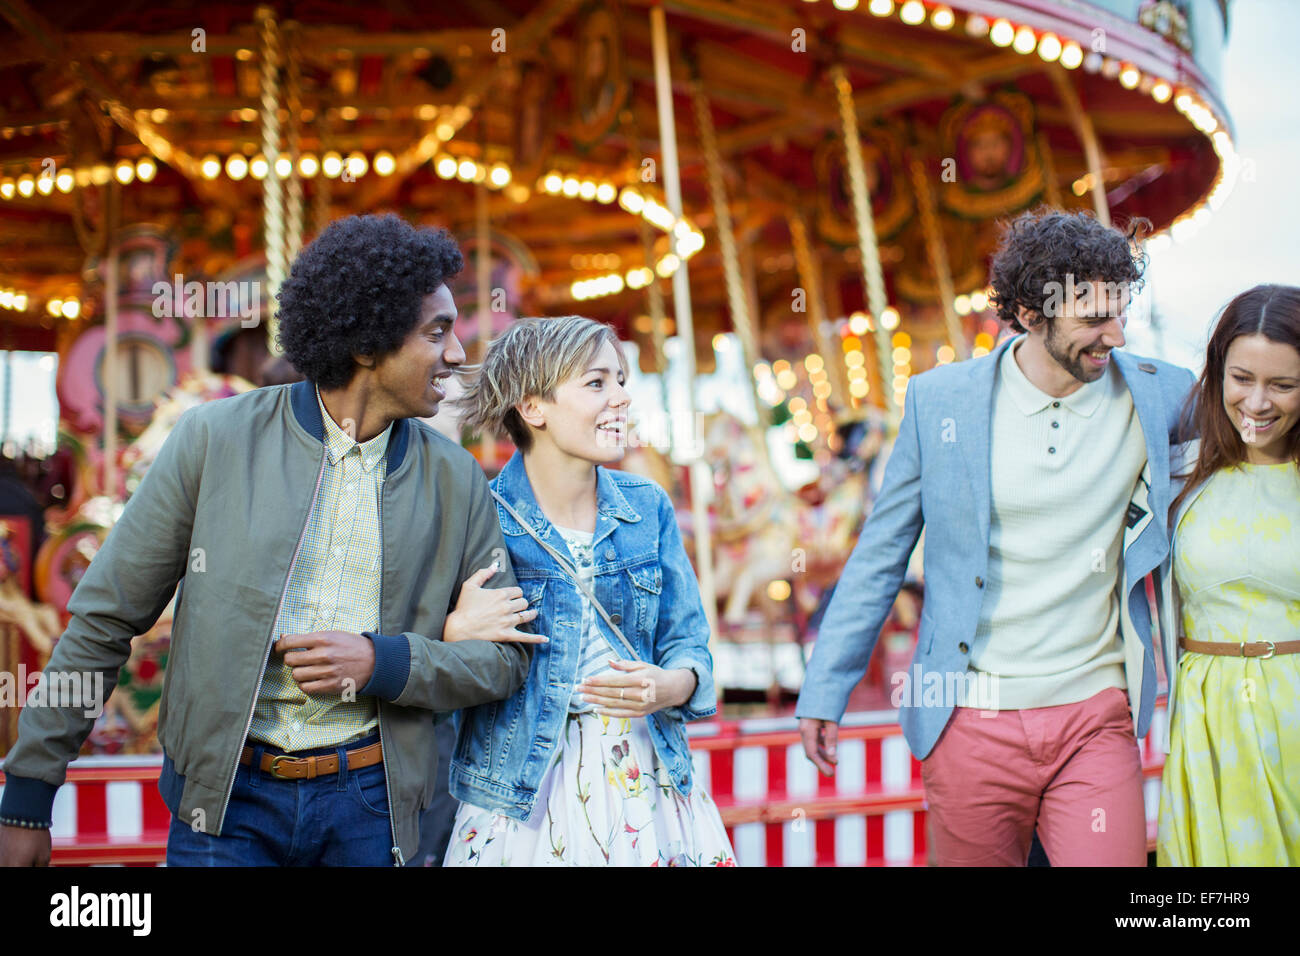 Two couples walking in amusement park and laughing - Stock Image